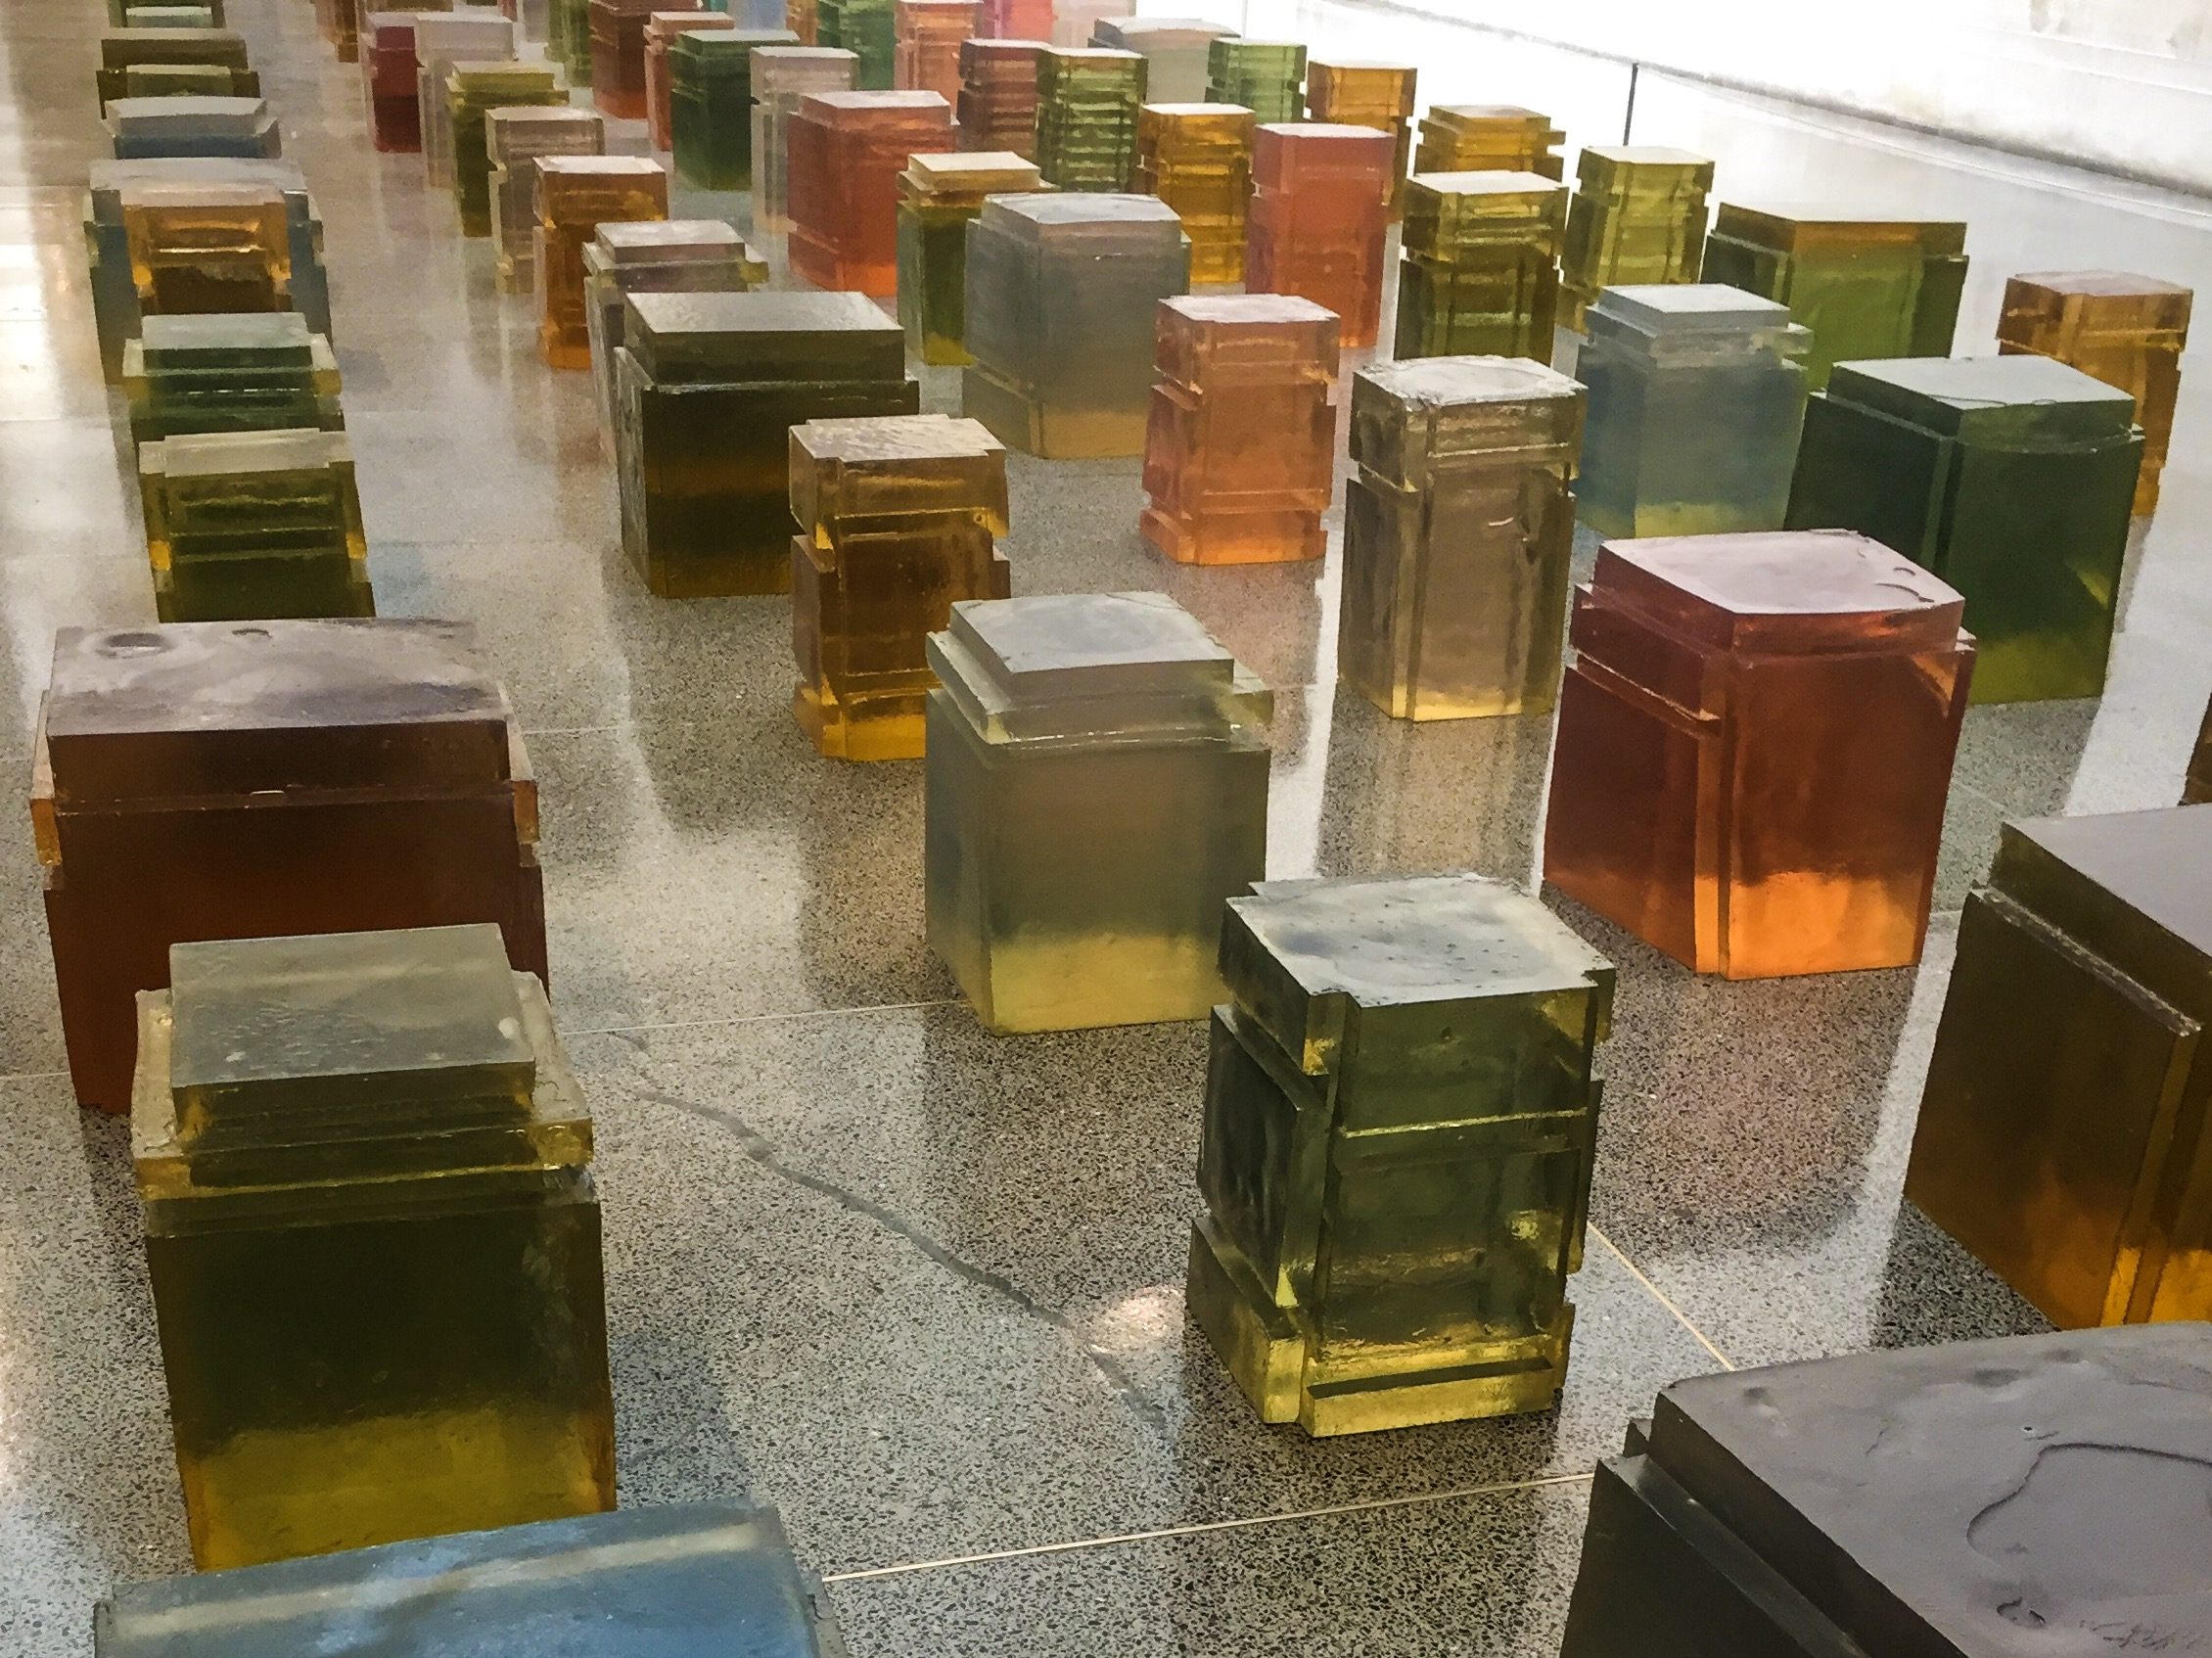 Rachel Whiteread's sculptures and artwork 'Untitled (One hundred spaces) at Tate Britain sculpture sculptor space clay resin